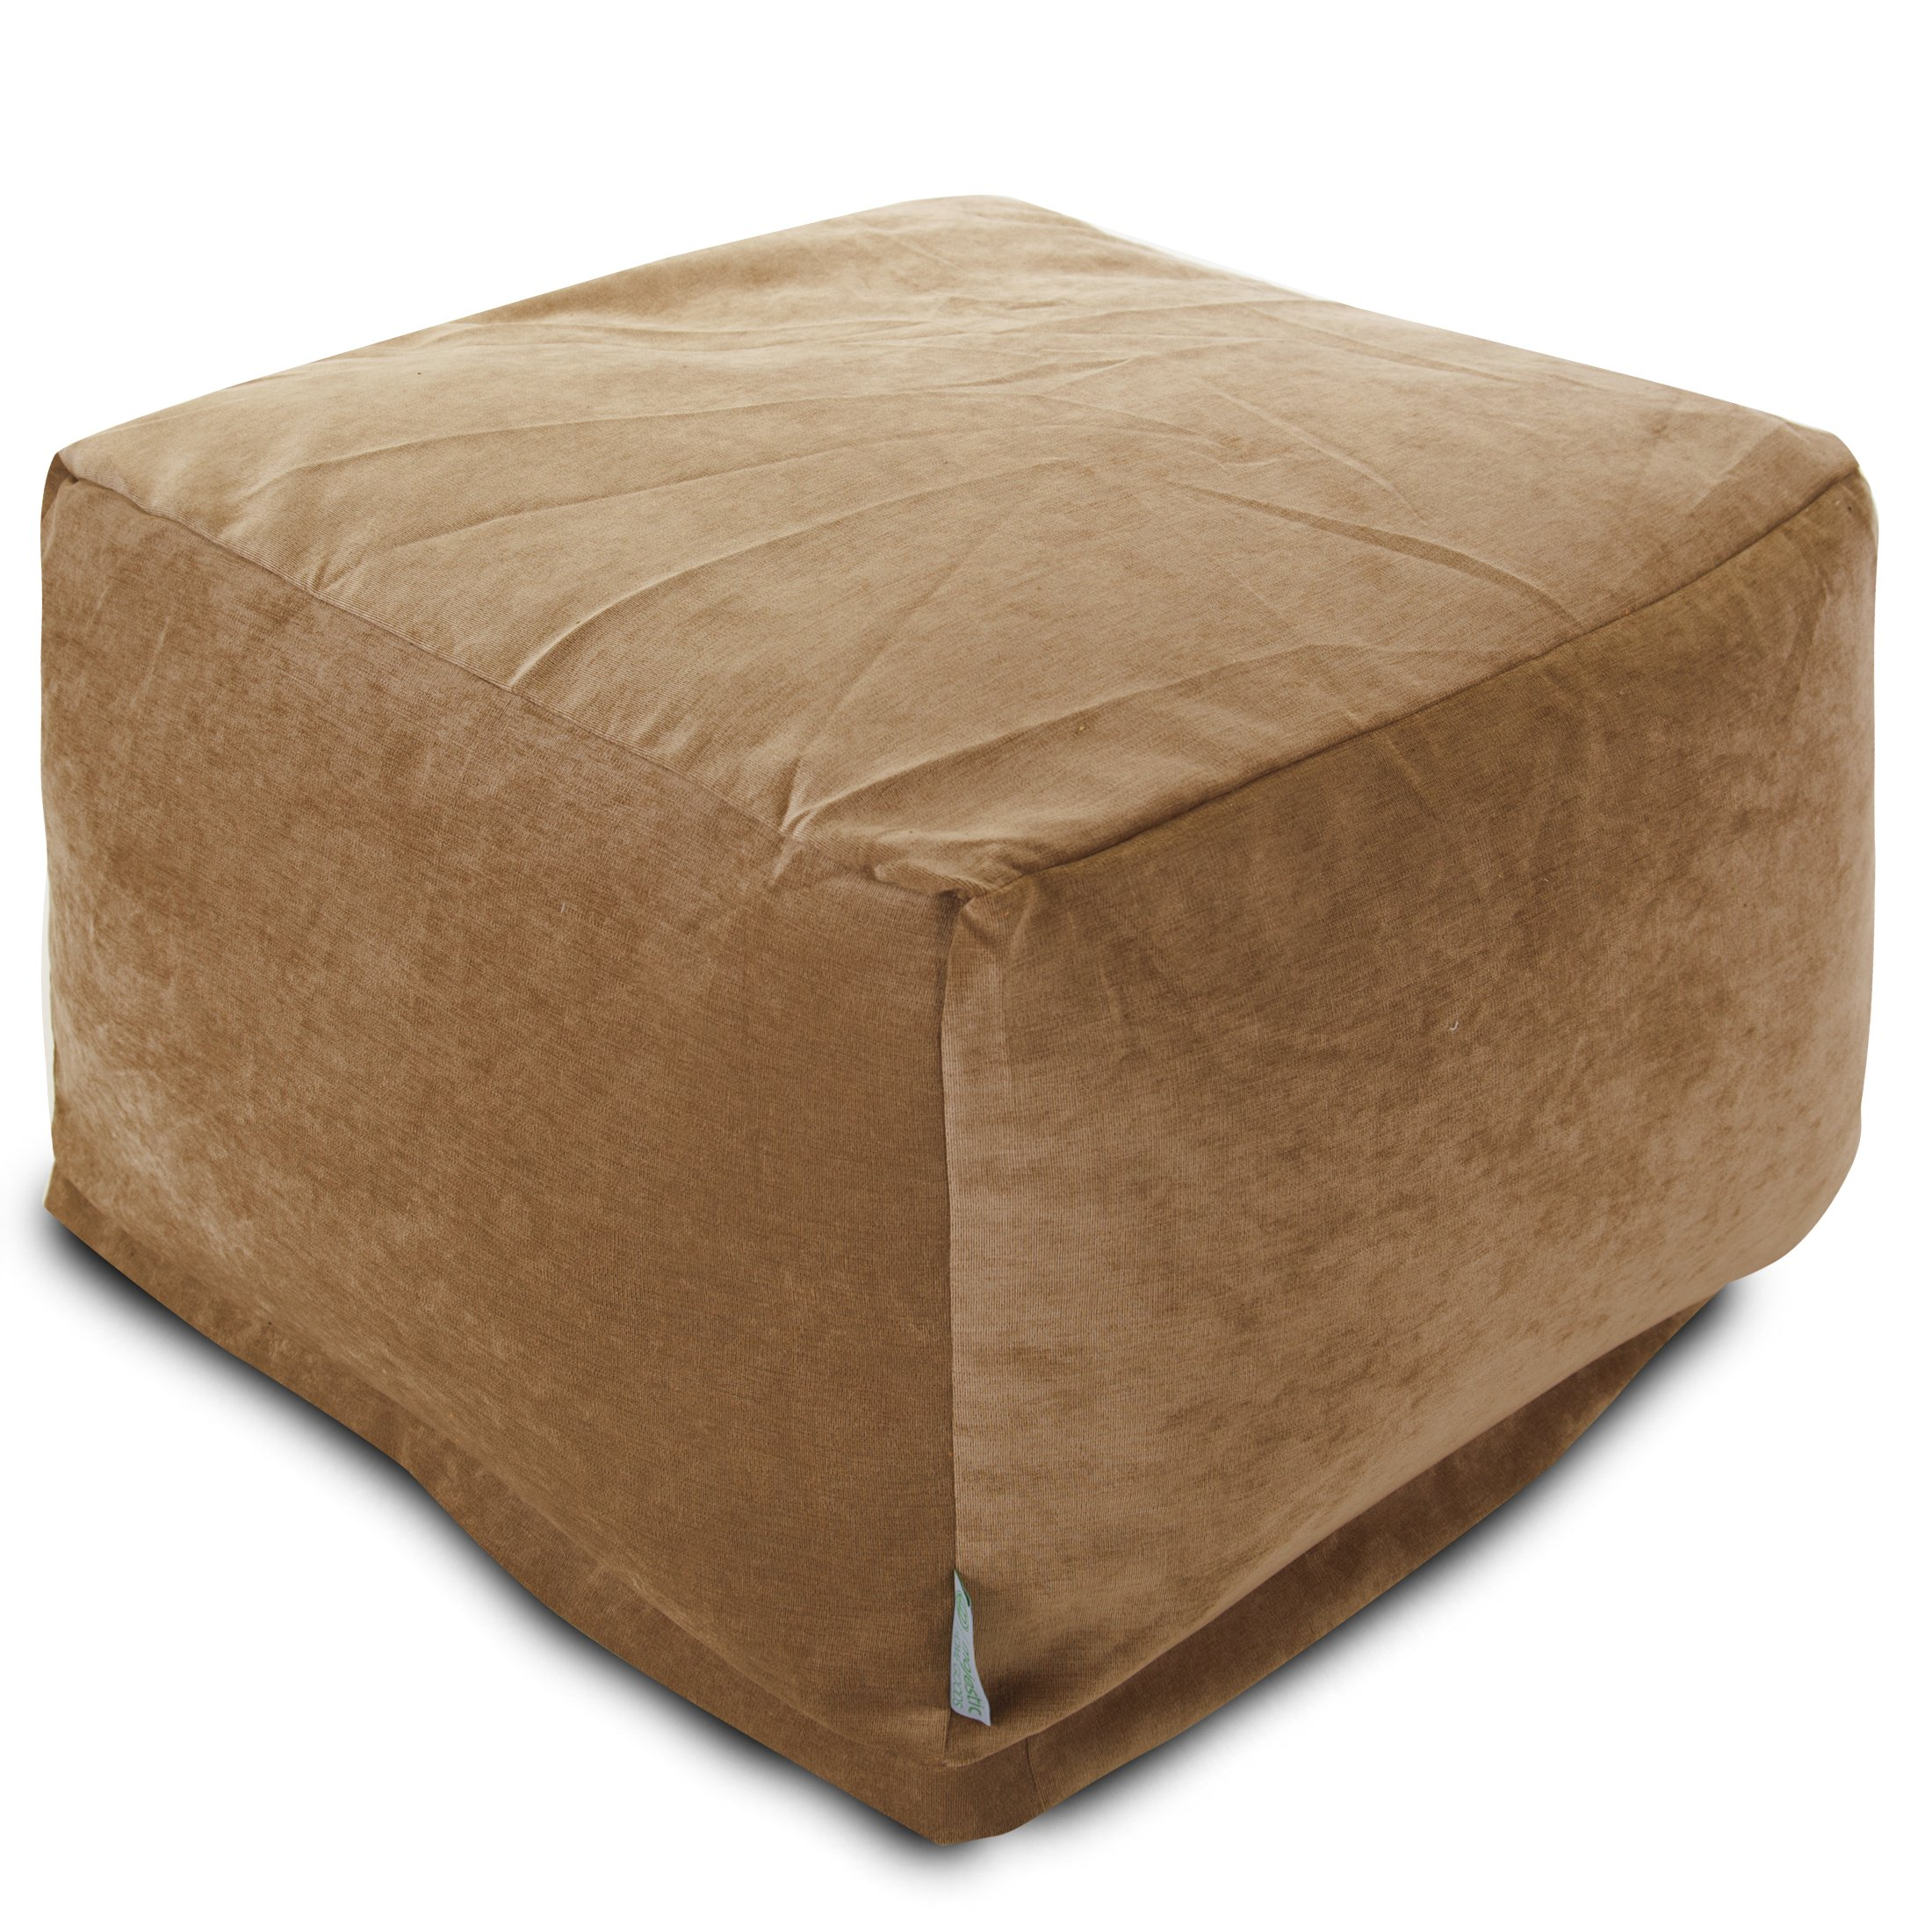 Majestic Home Goods Villa Pearl Large Ottoman